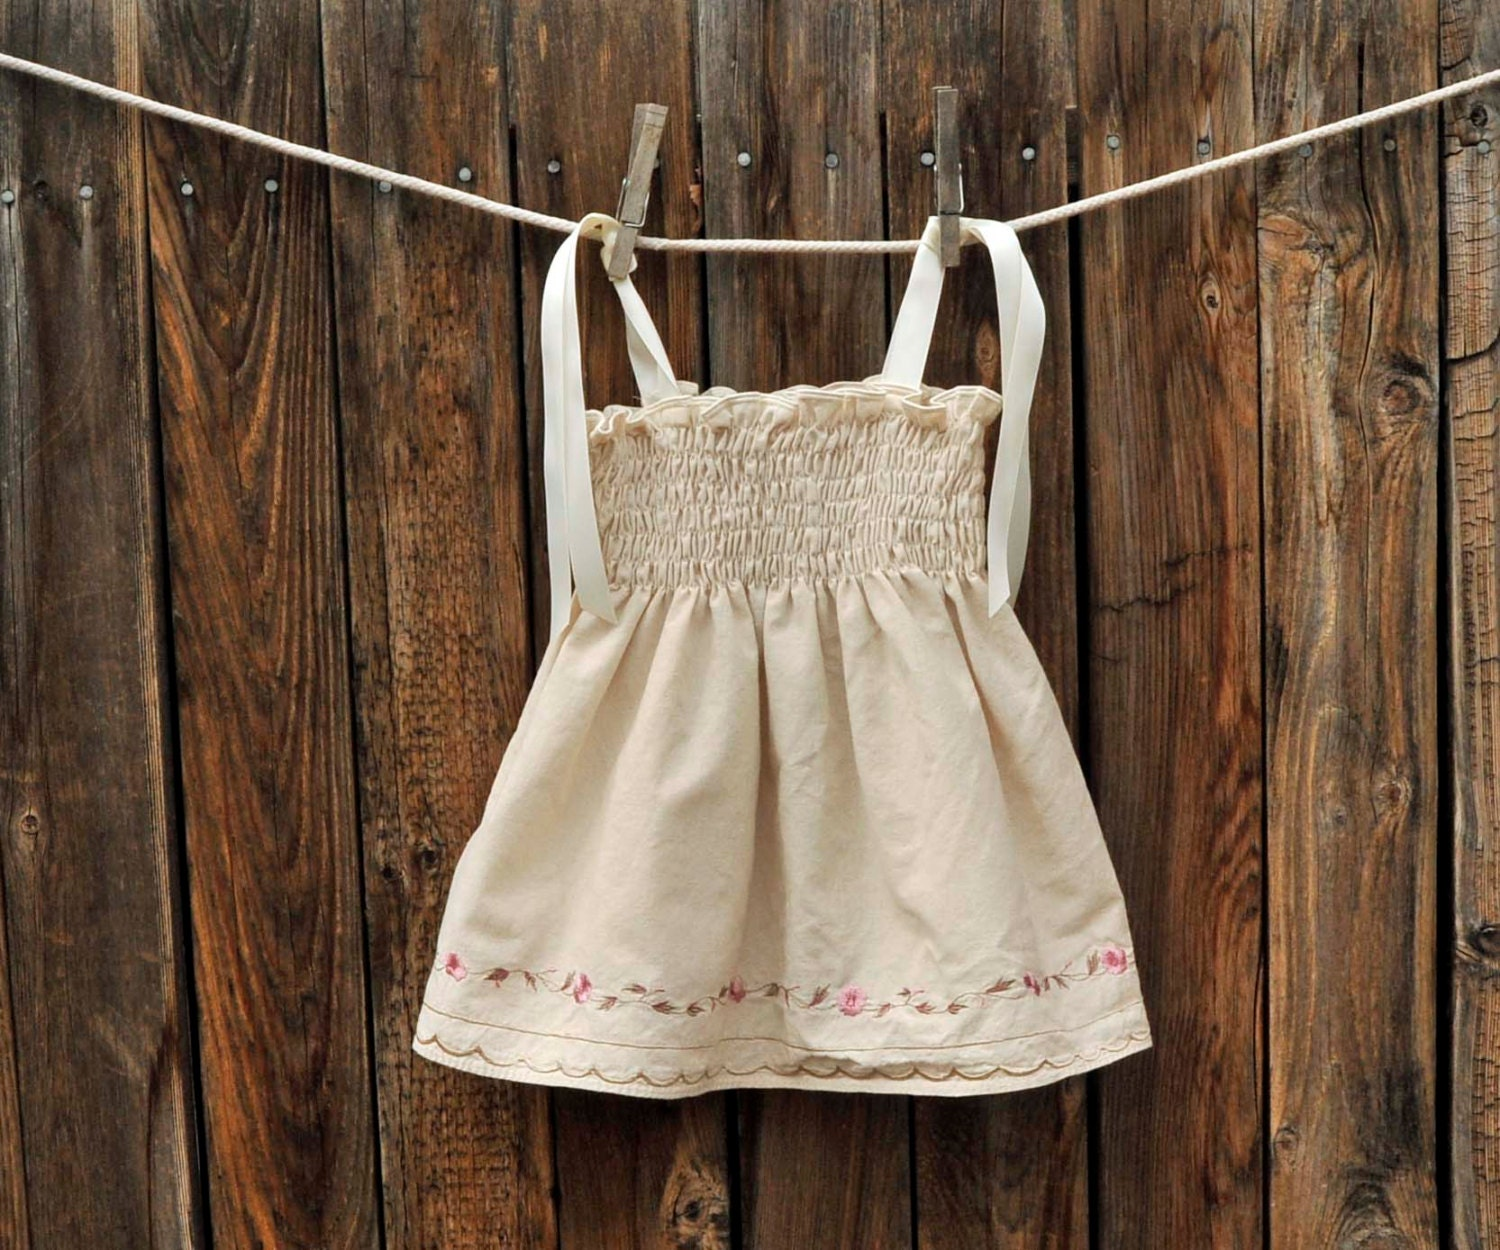 Embroidered Baby Dress, Cream and Pink Vintage dress ribbon ties, Great for beach weddings, portraits... 3m,6m,9m,12m,18m - SageNThymeDesigns